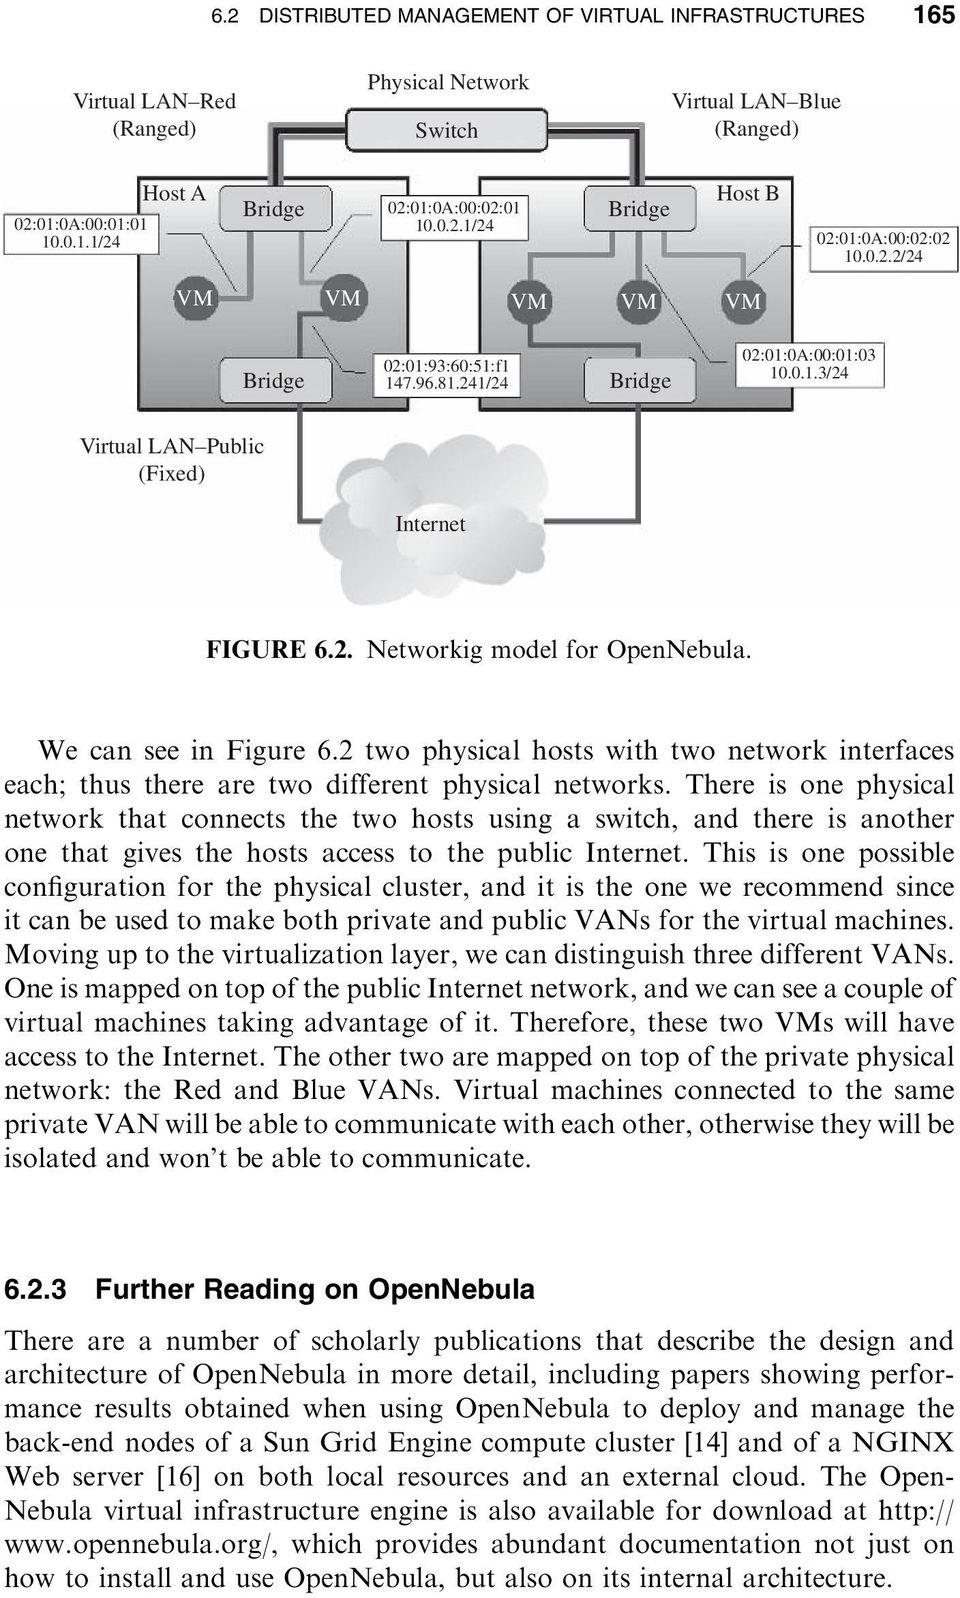 We can see in Figure 6.2 two physical hosts with two network interfaces each; thus there are two different physical networks.